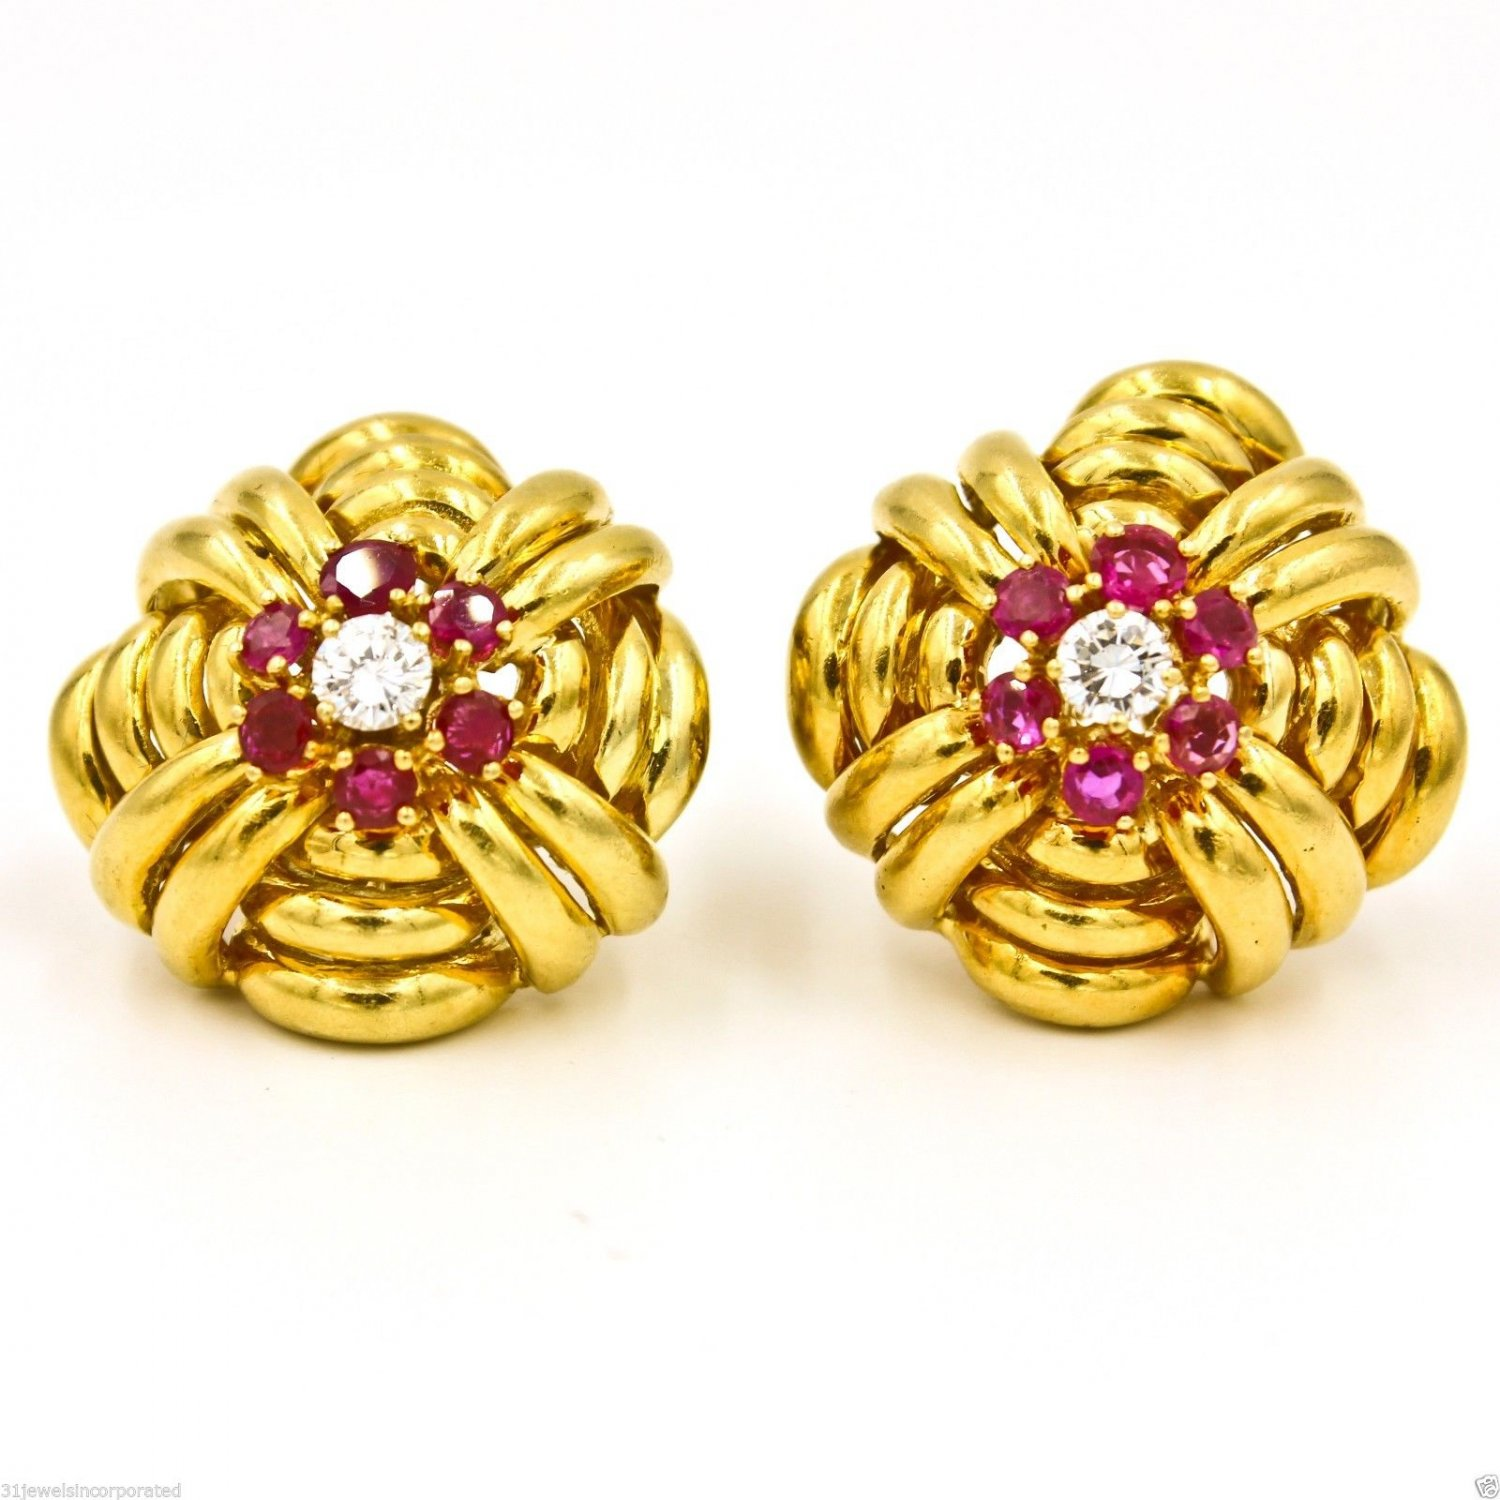 Vintage Tiffany & Co. Diamond & Rubies in 18k Yellow Gold Earrings Circa 1940s